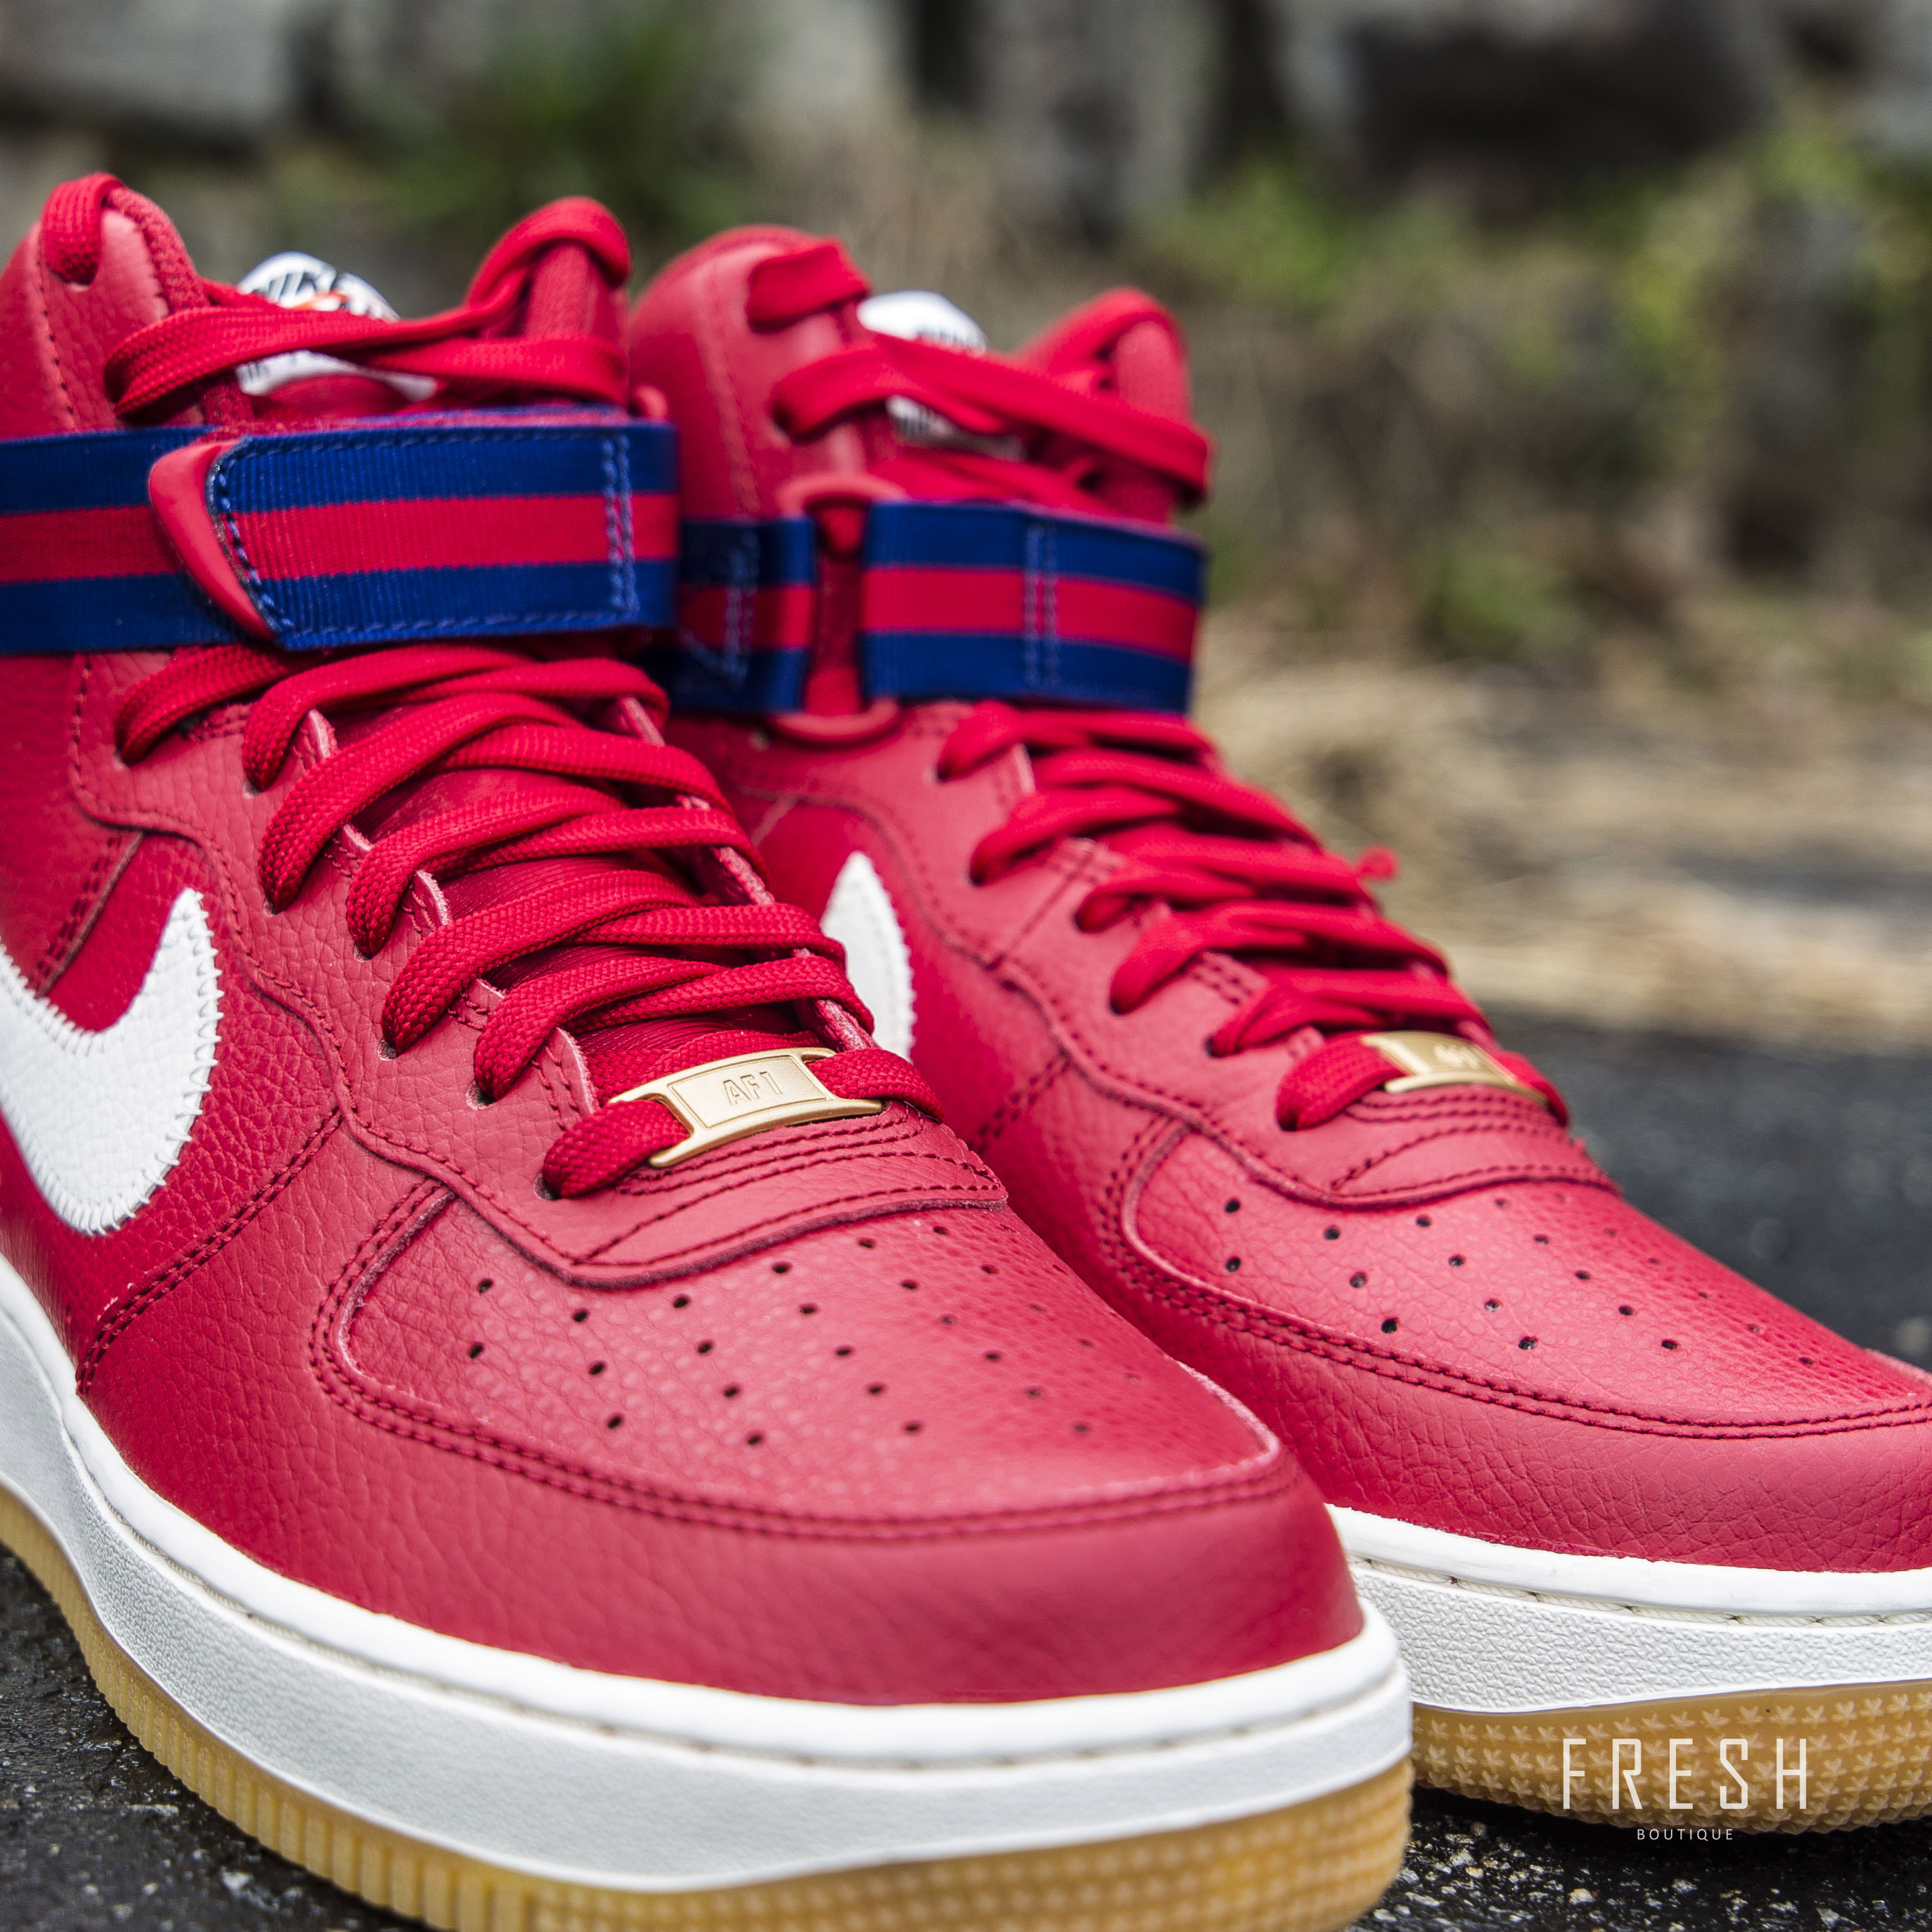 Fresh Sneaker Boutique Air Force 1 High 07 Gym Red Royal Blue